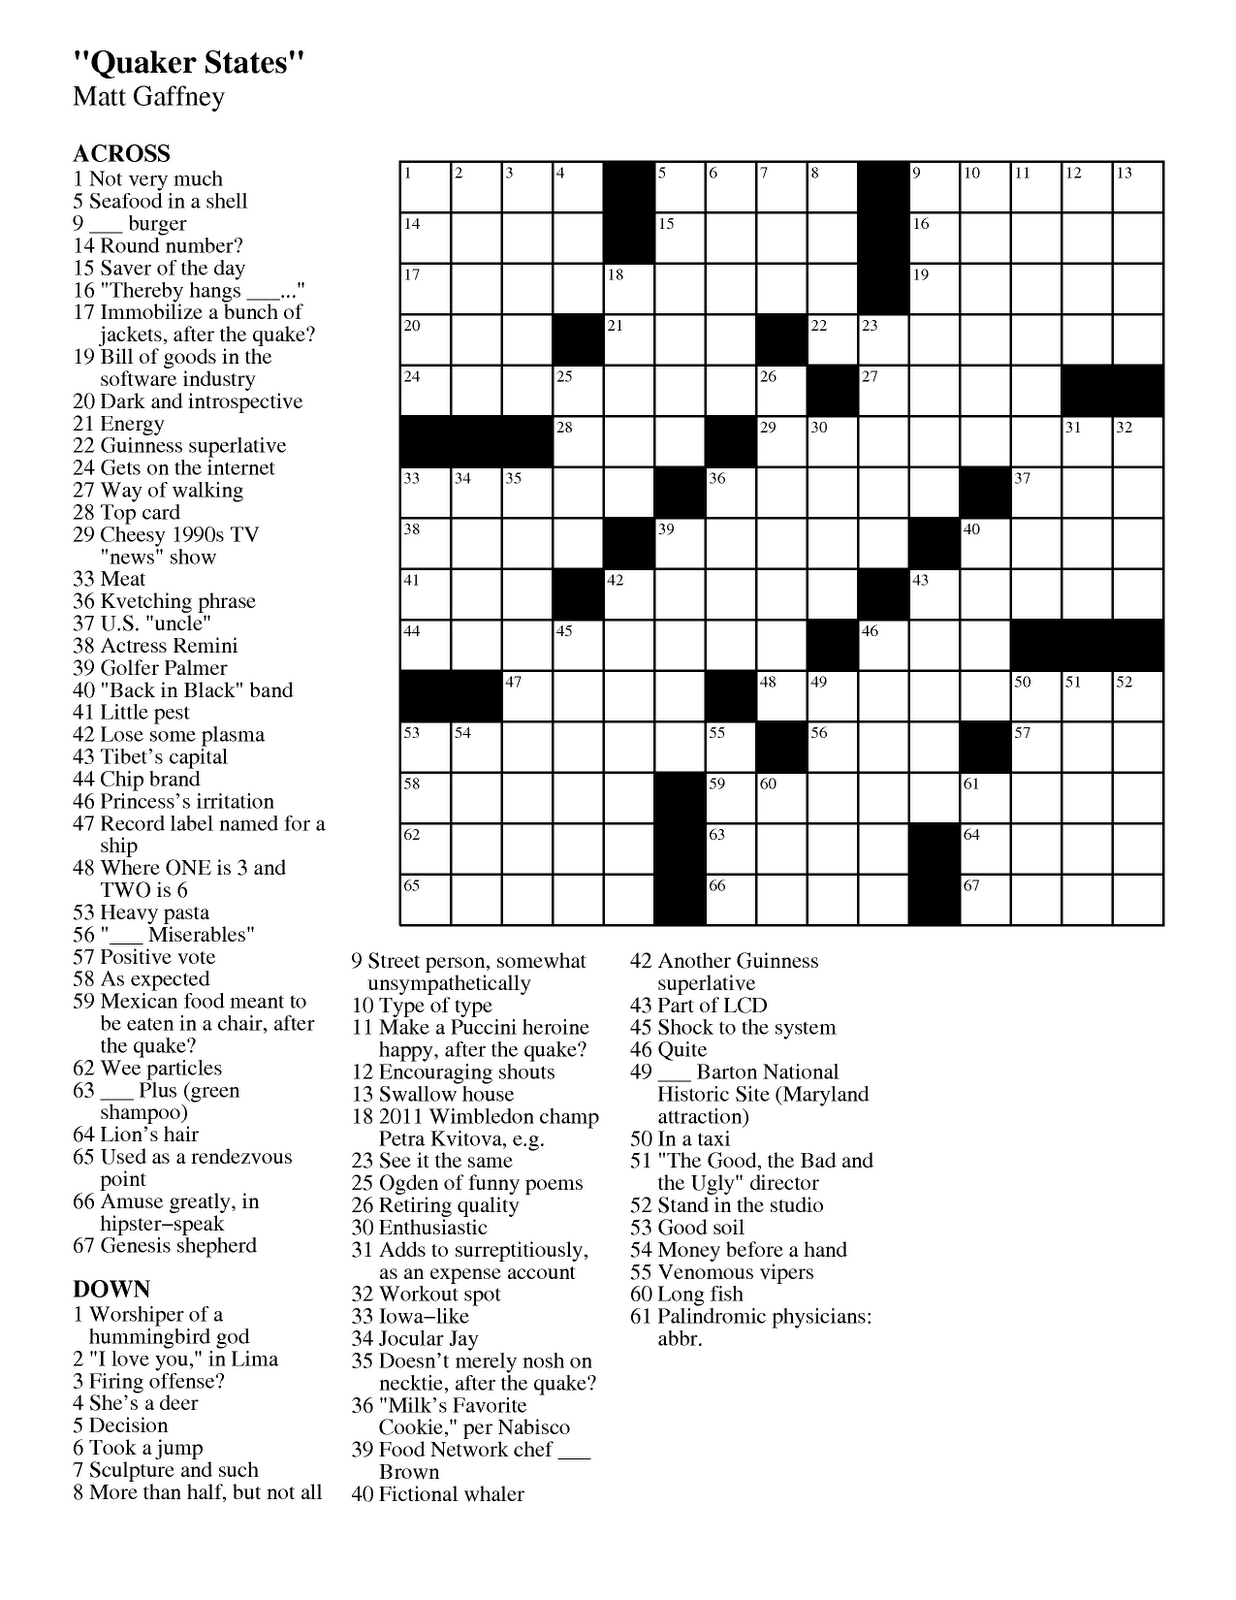 Free Printable Large Print Crossword Puzzles | M3U8 - Simple Crossword Puzzles Printable Pdf